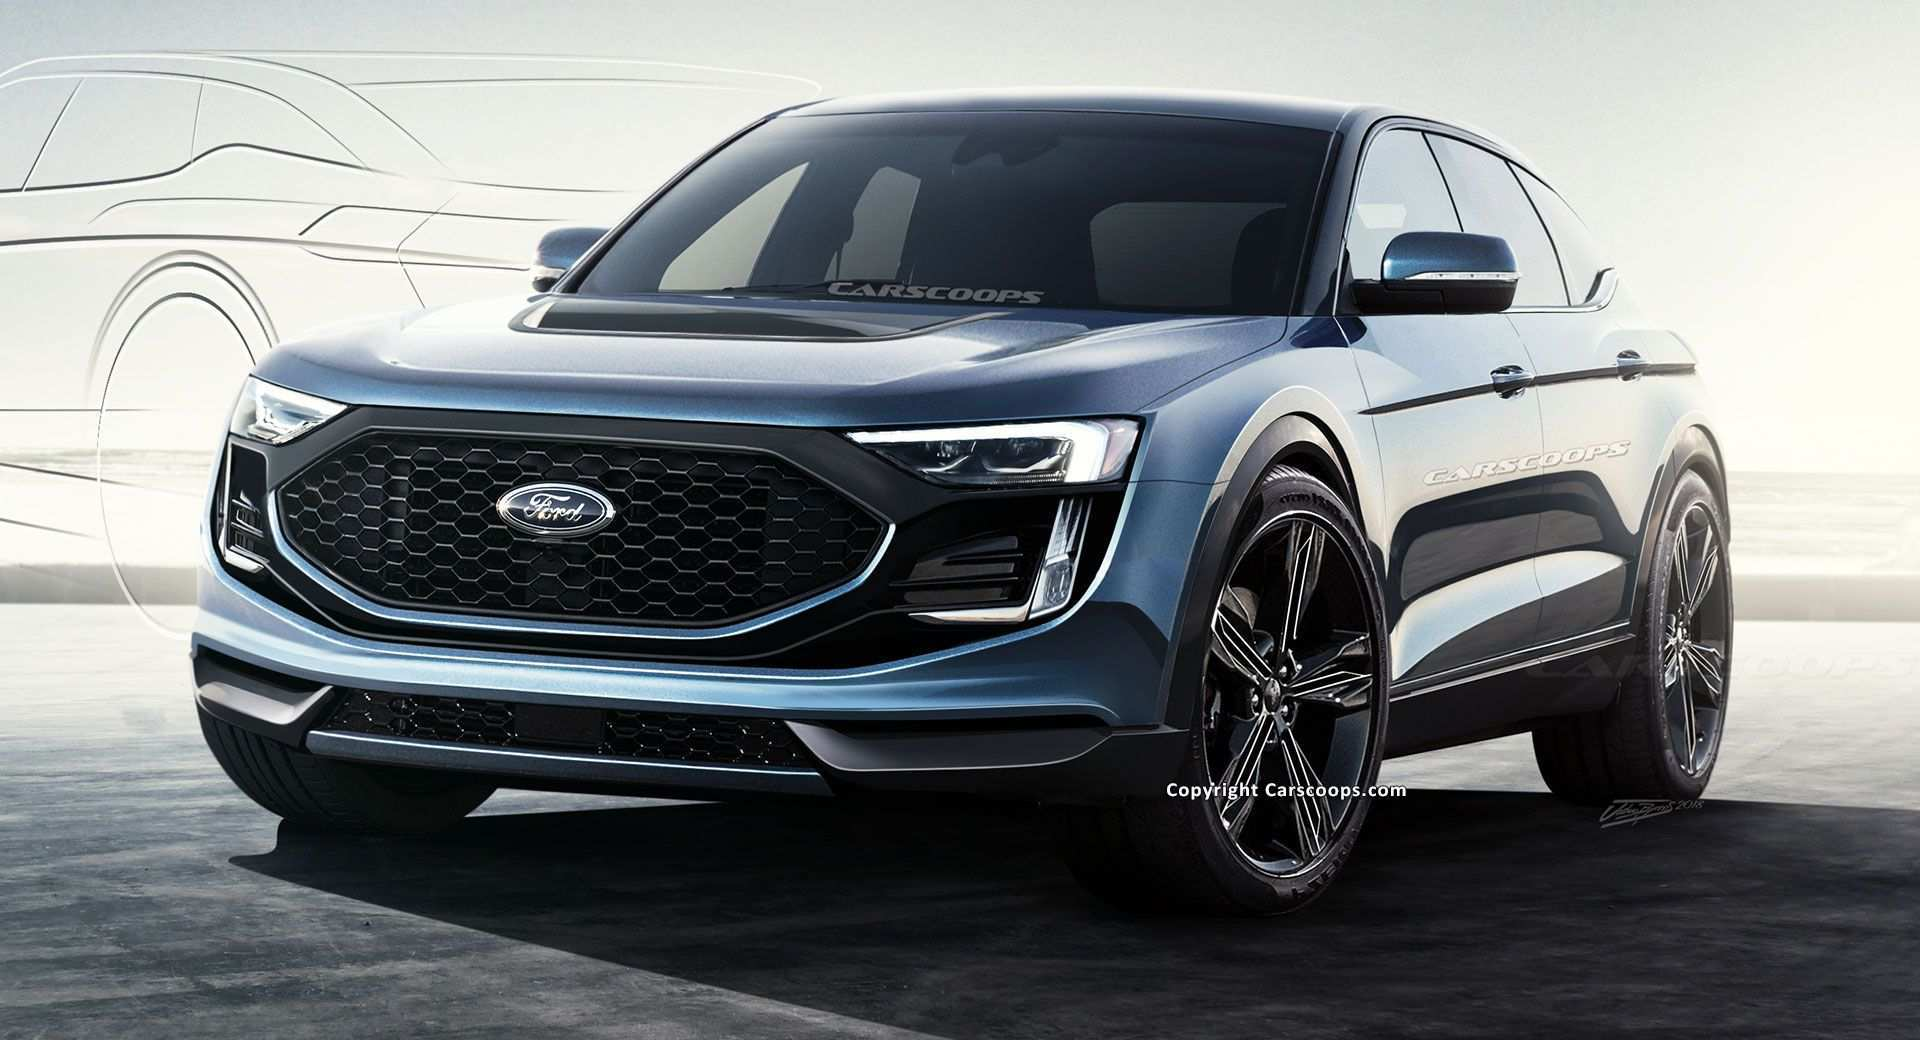 28 All New Ford Cars 2020 Redesign with Ford Cars 2020